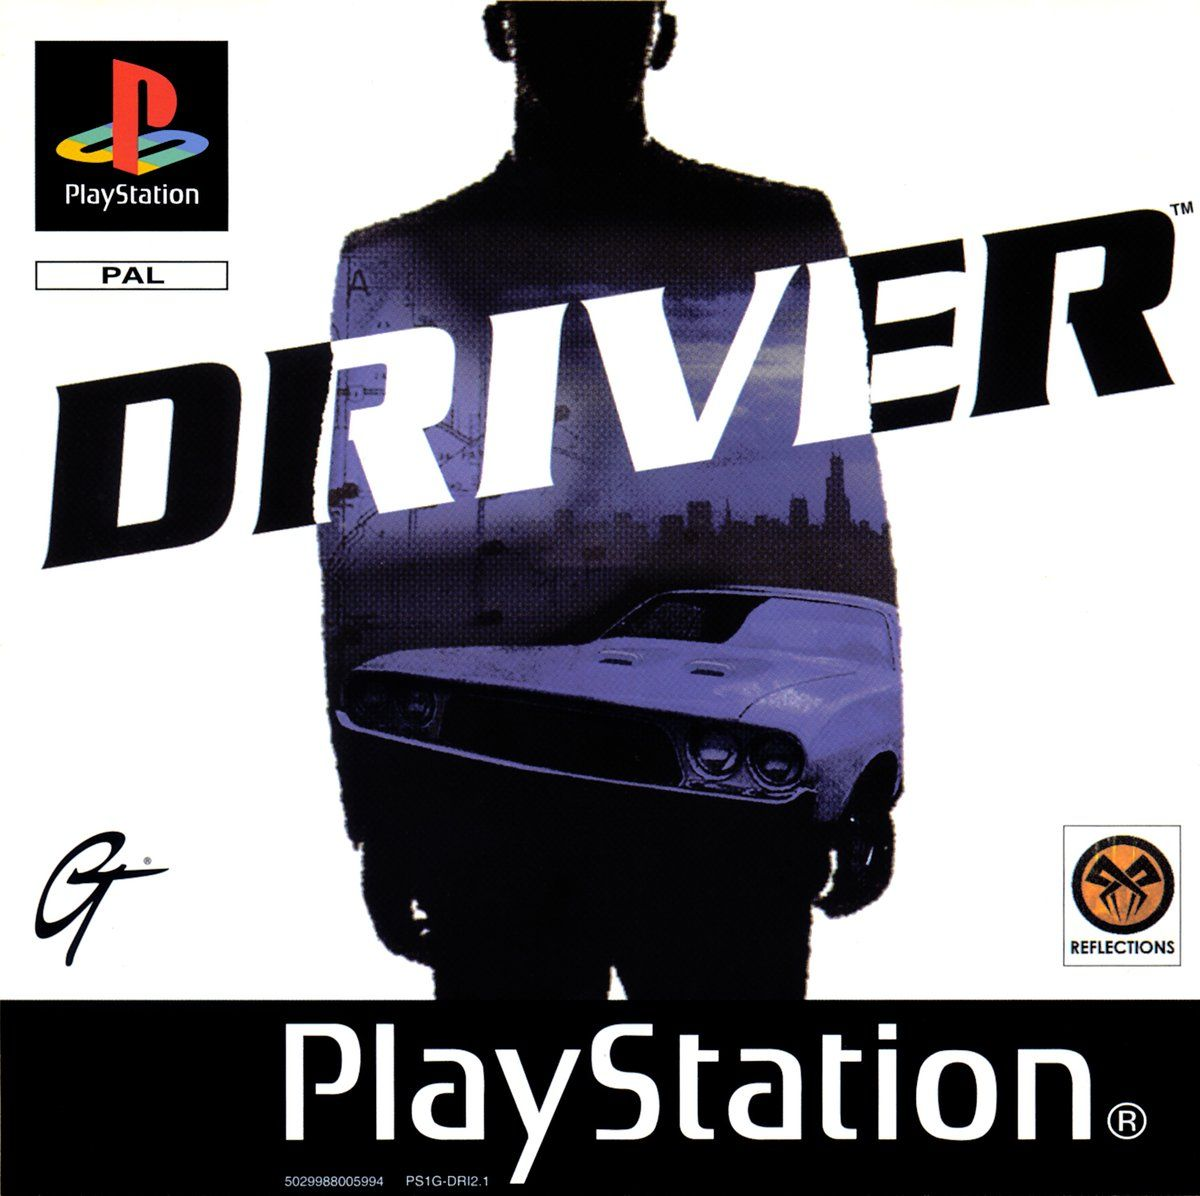 Cool Box Art On Driver Video Game Playstation Classic Video Games